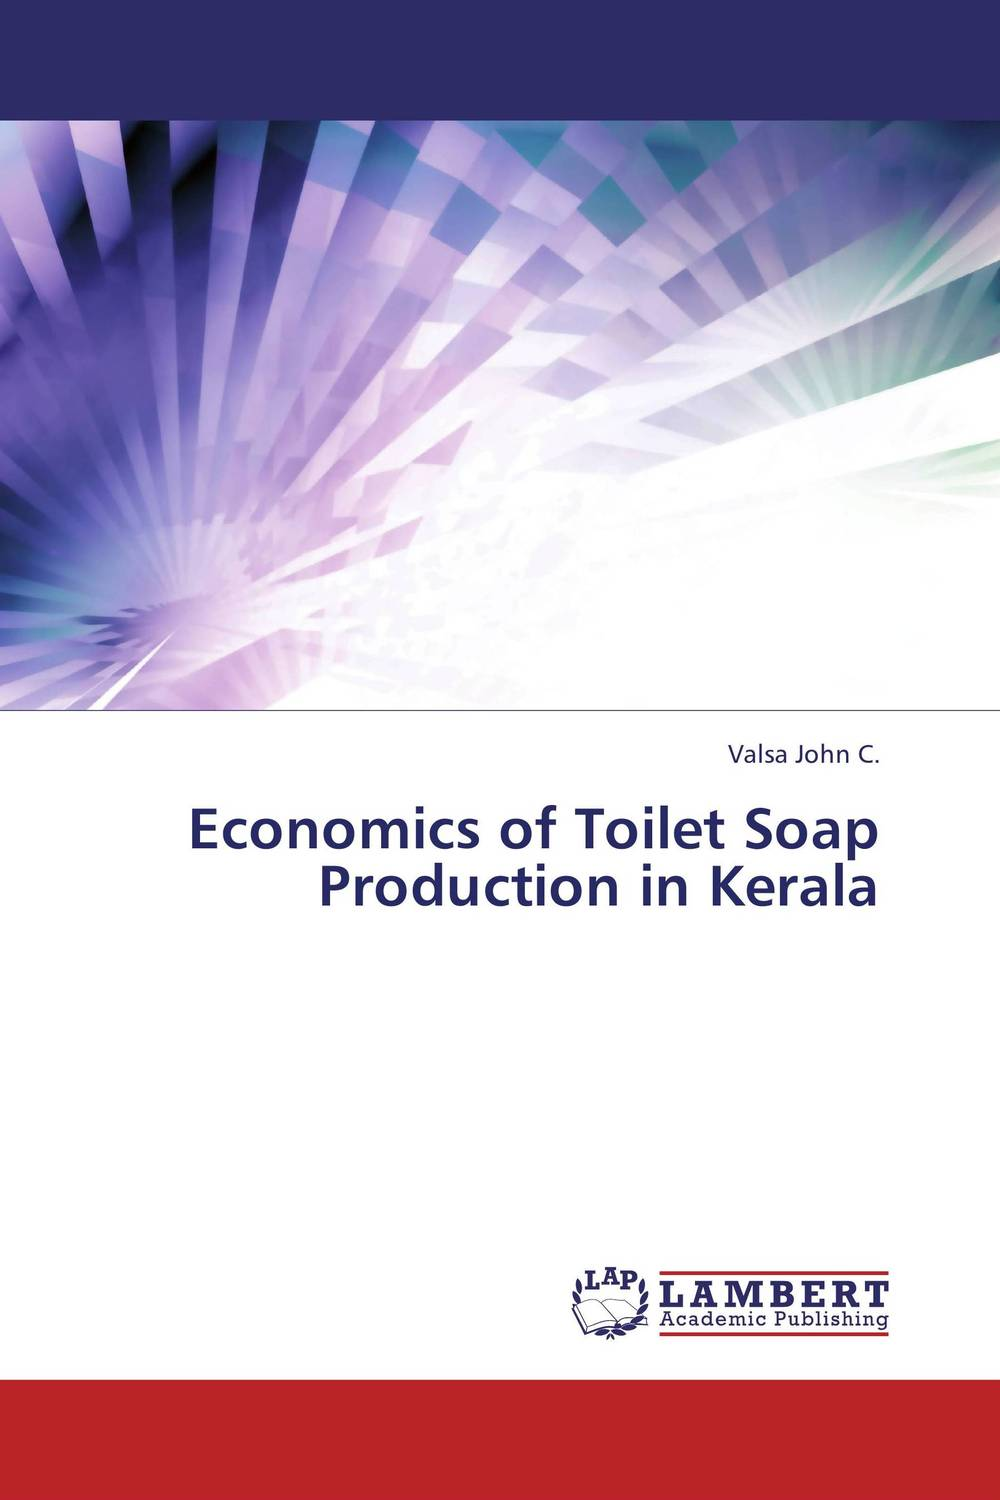 Economics of Toilet Soap Production in Kerala determinants of yield performance in small scale catfish production